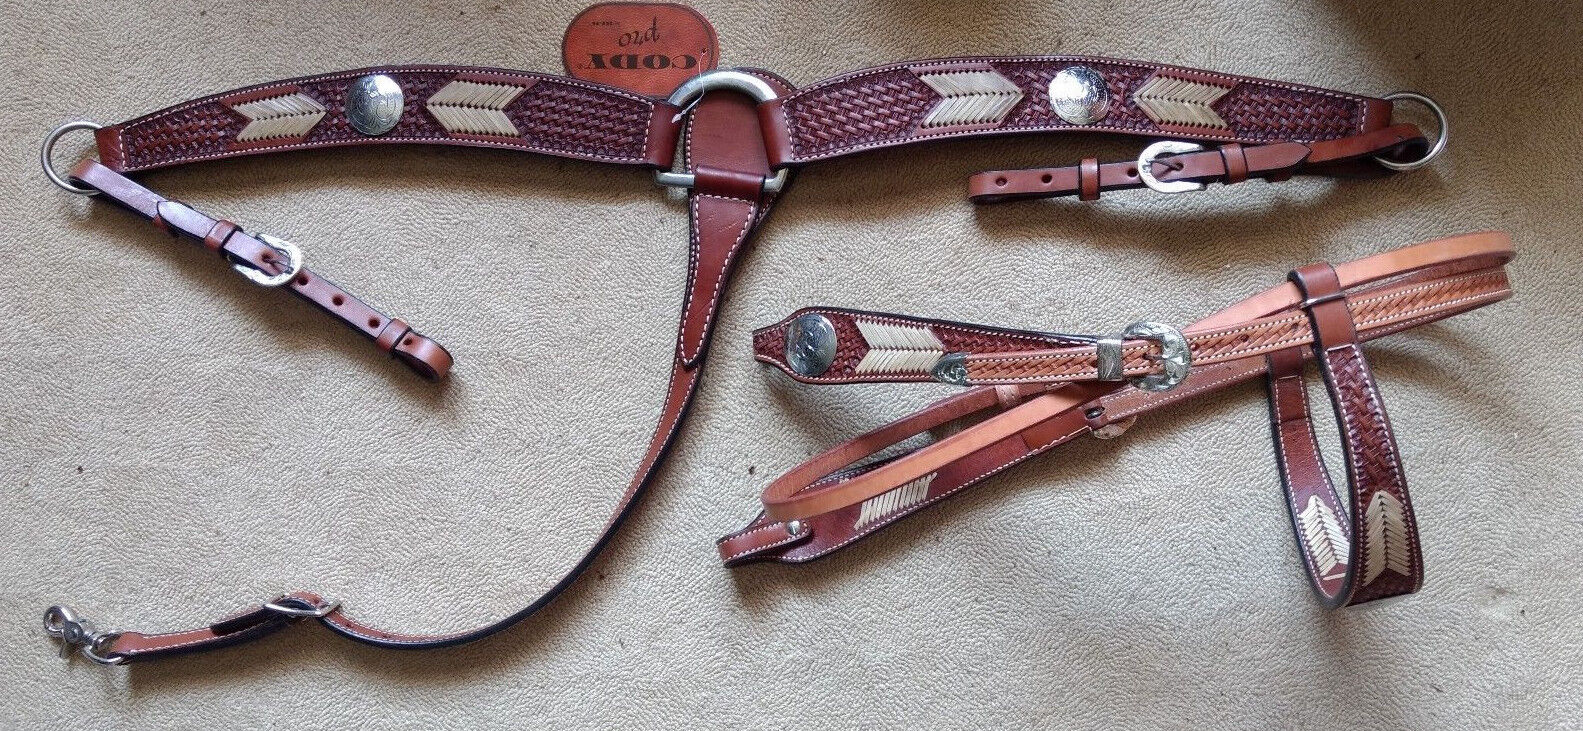 New Cody Pro Breast Collar and Bridle Set Basket Tooled Rawhide Laced Arrow Show